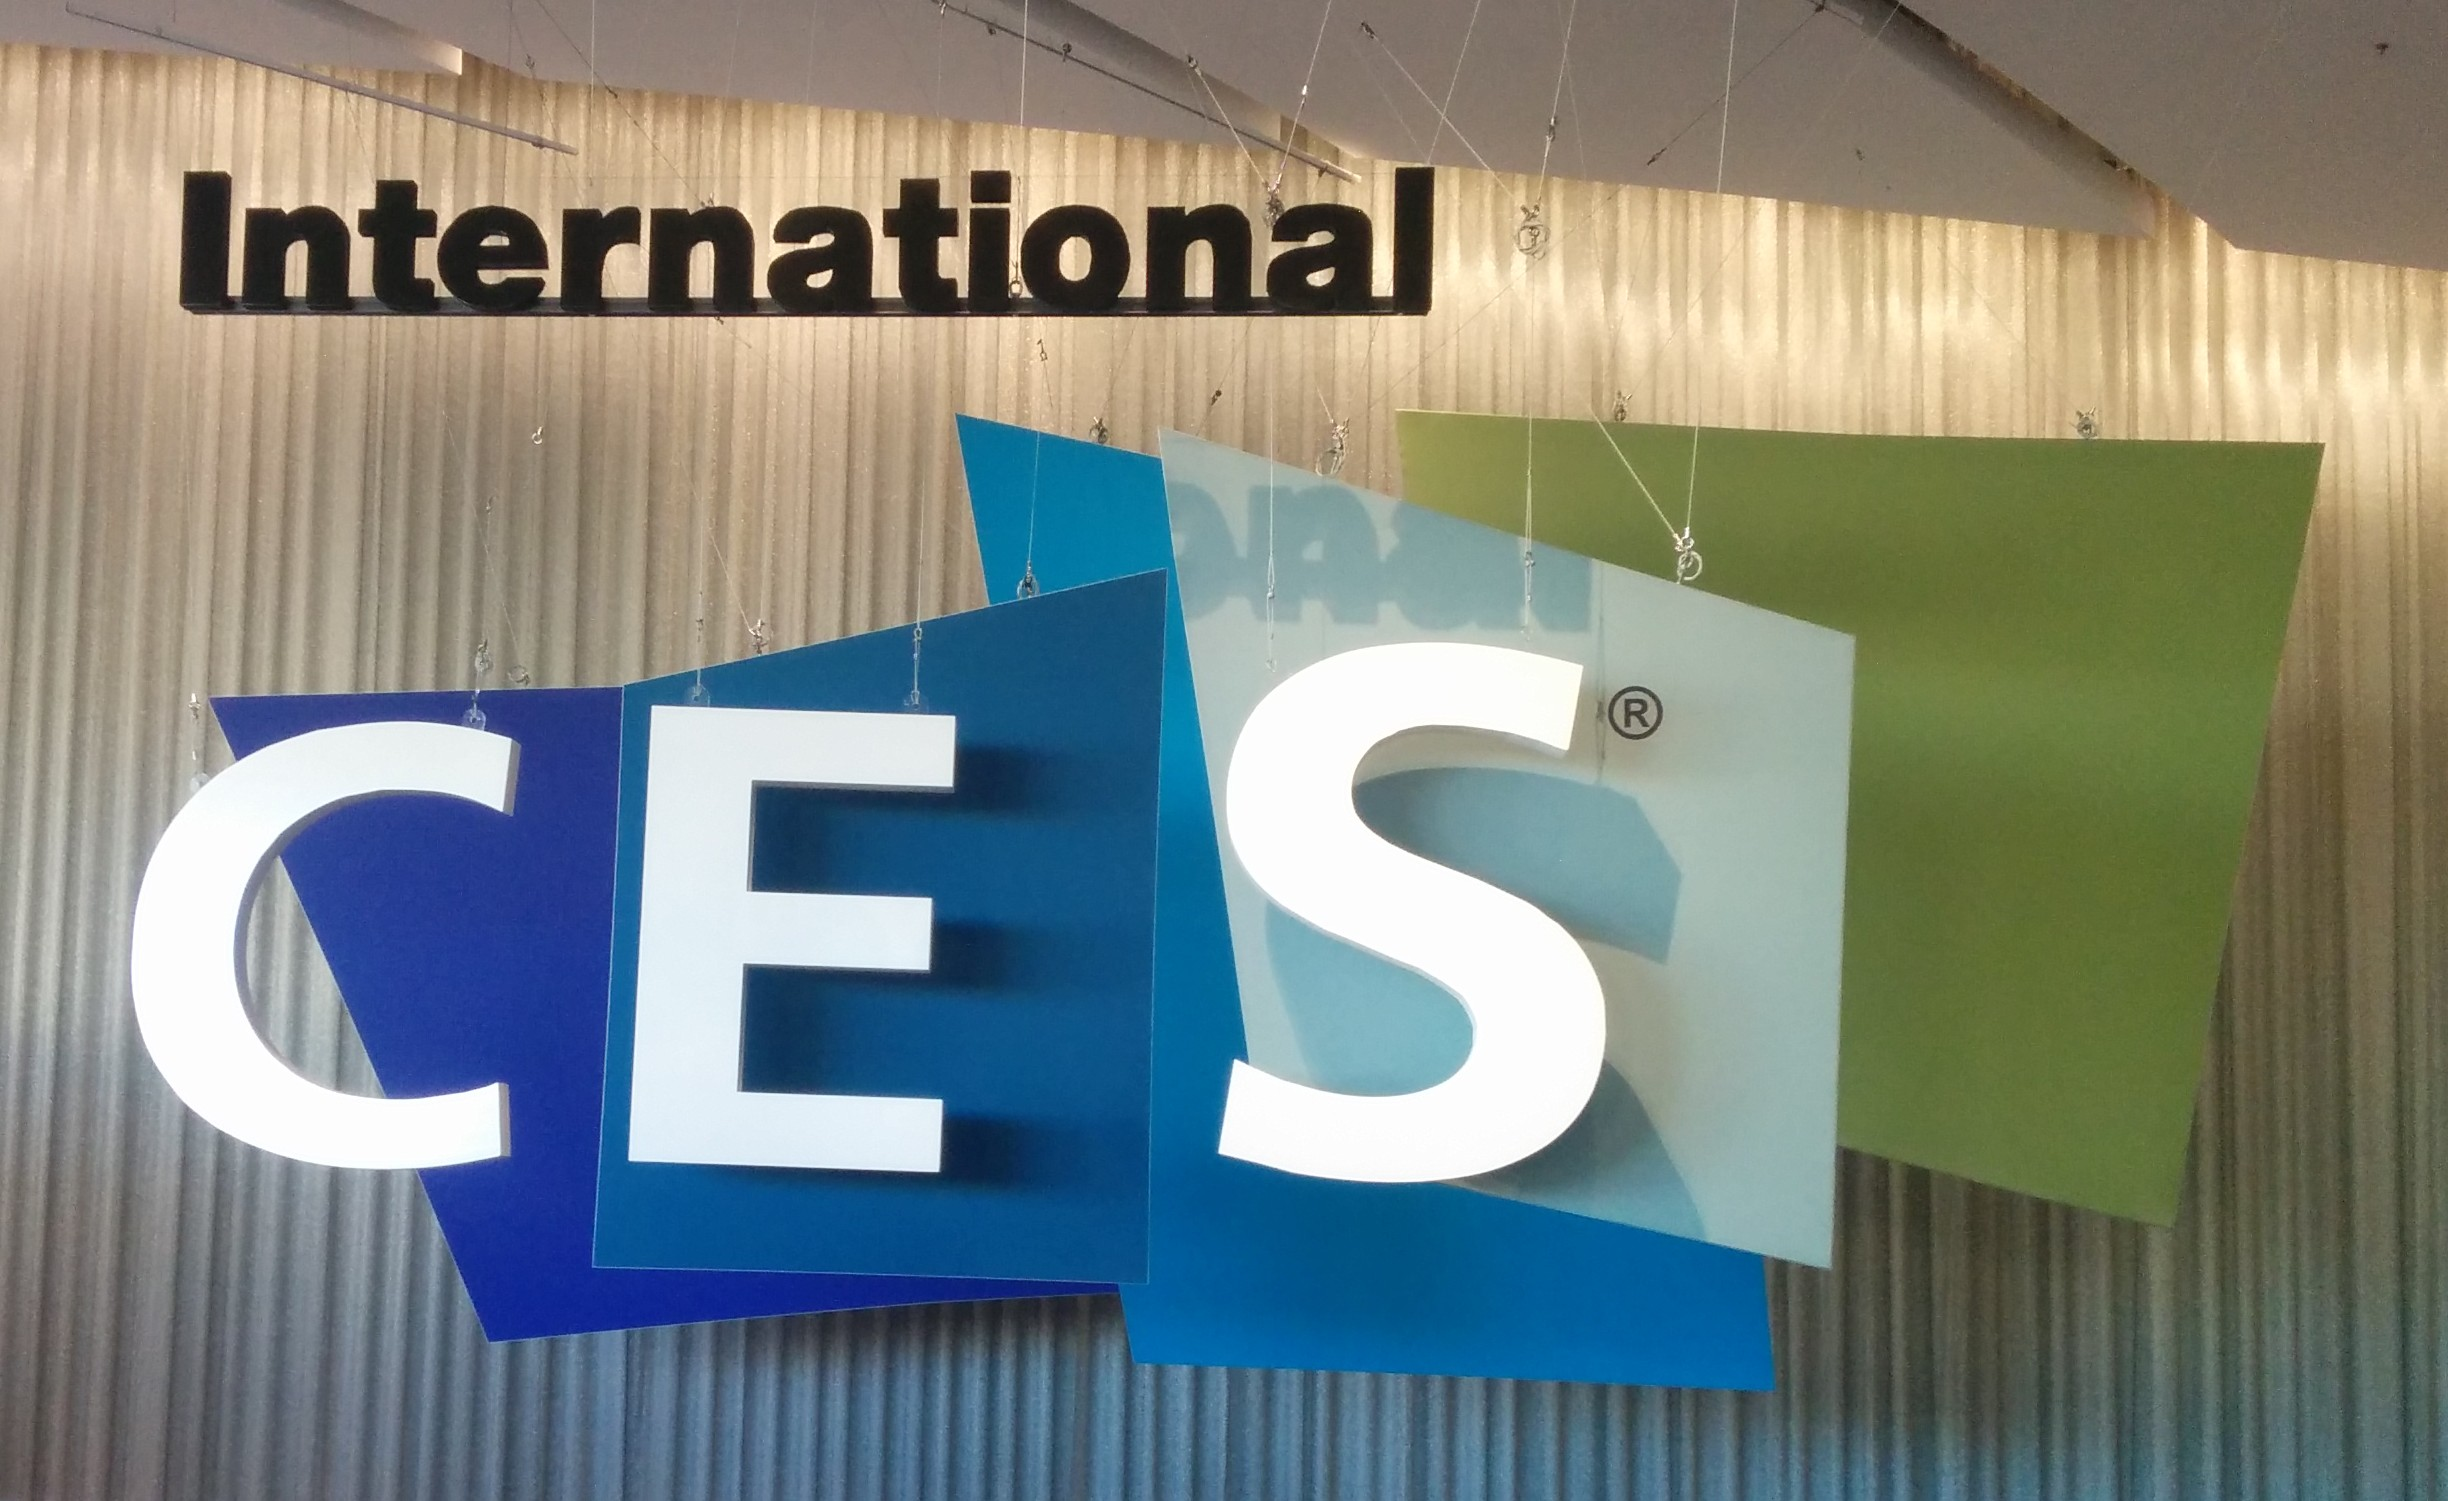 The Week in Tech: Recap of CES, Verizon-AOL rumors, and more